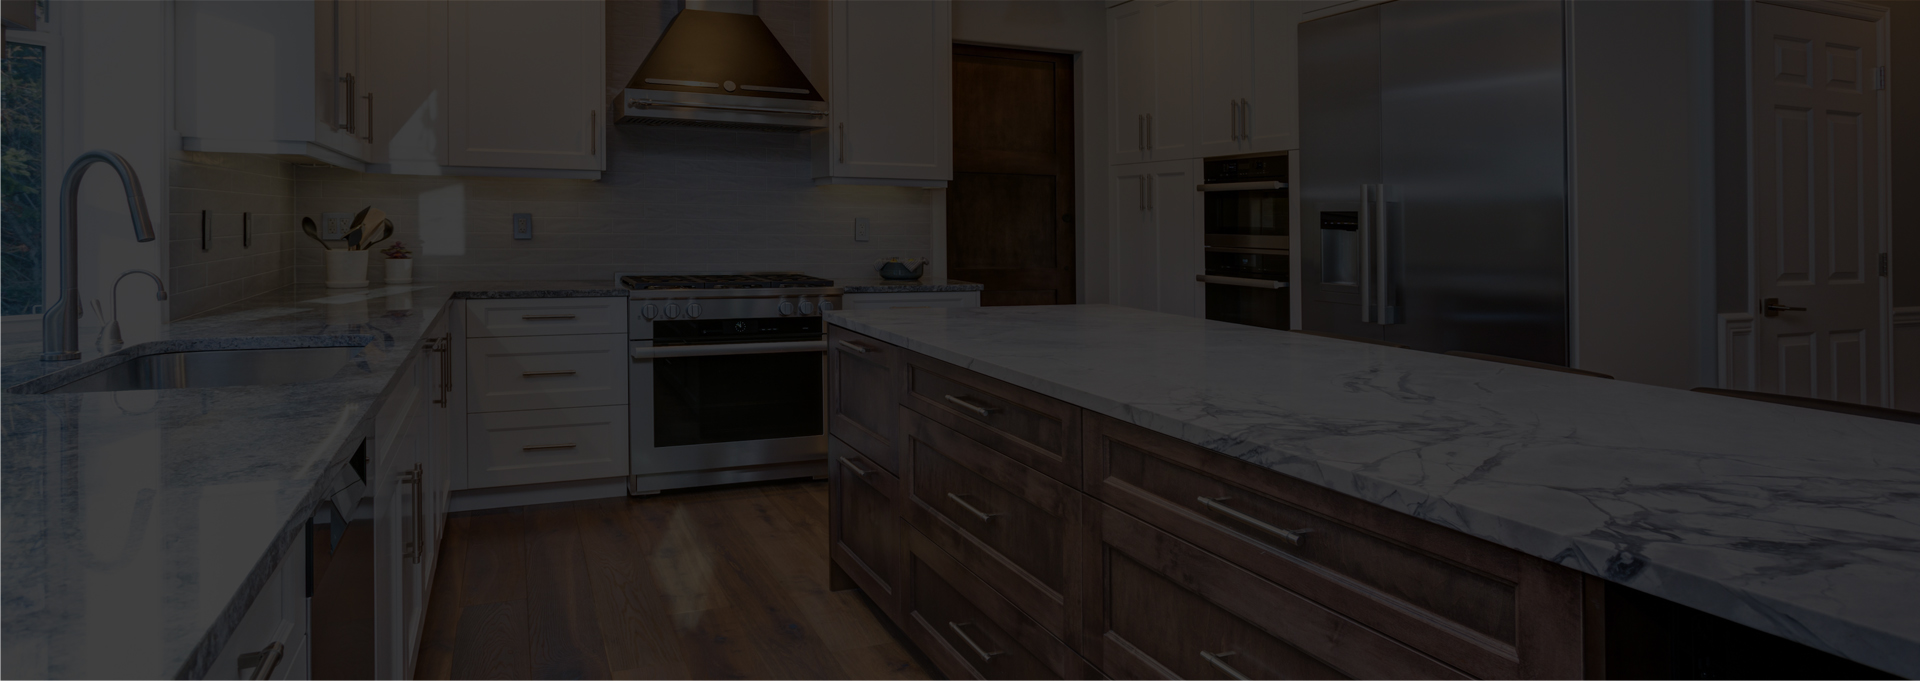 Kitchen Cabinets In Mississauga Prefabricated Cabinets By Cgd